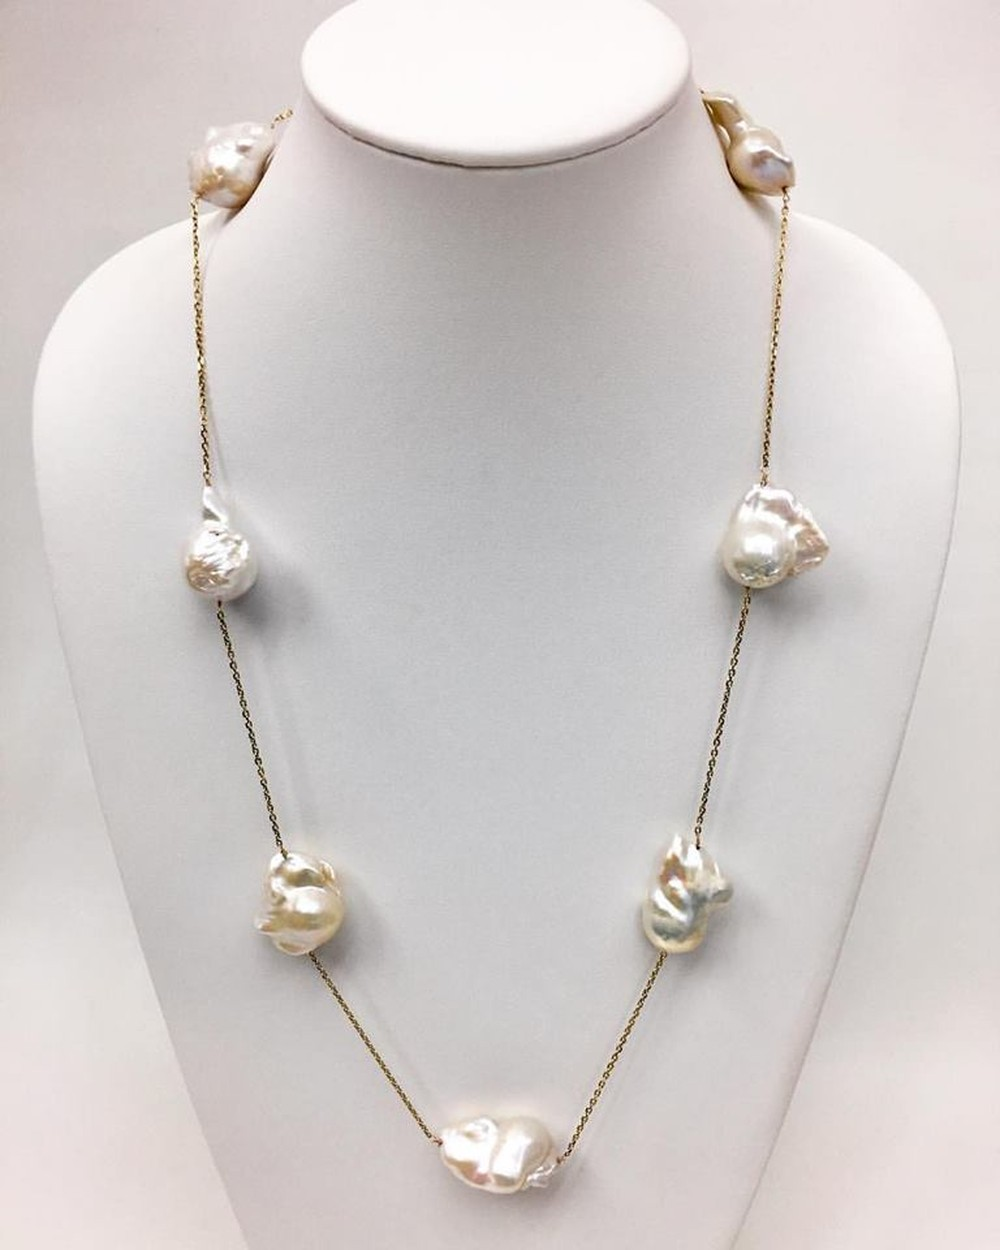 Jumbo Baroque Pearls Long Chain Station Necklace